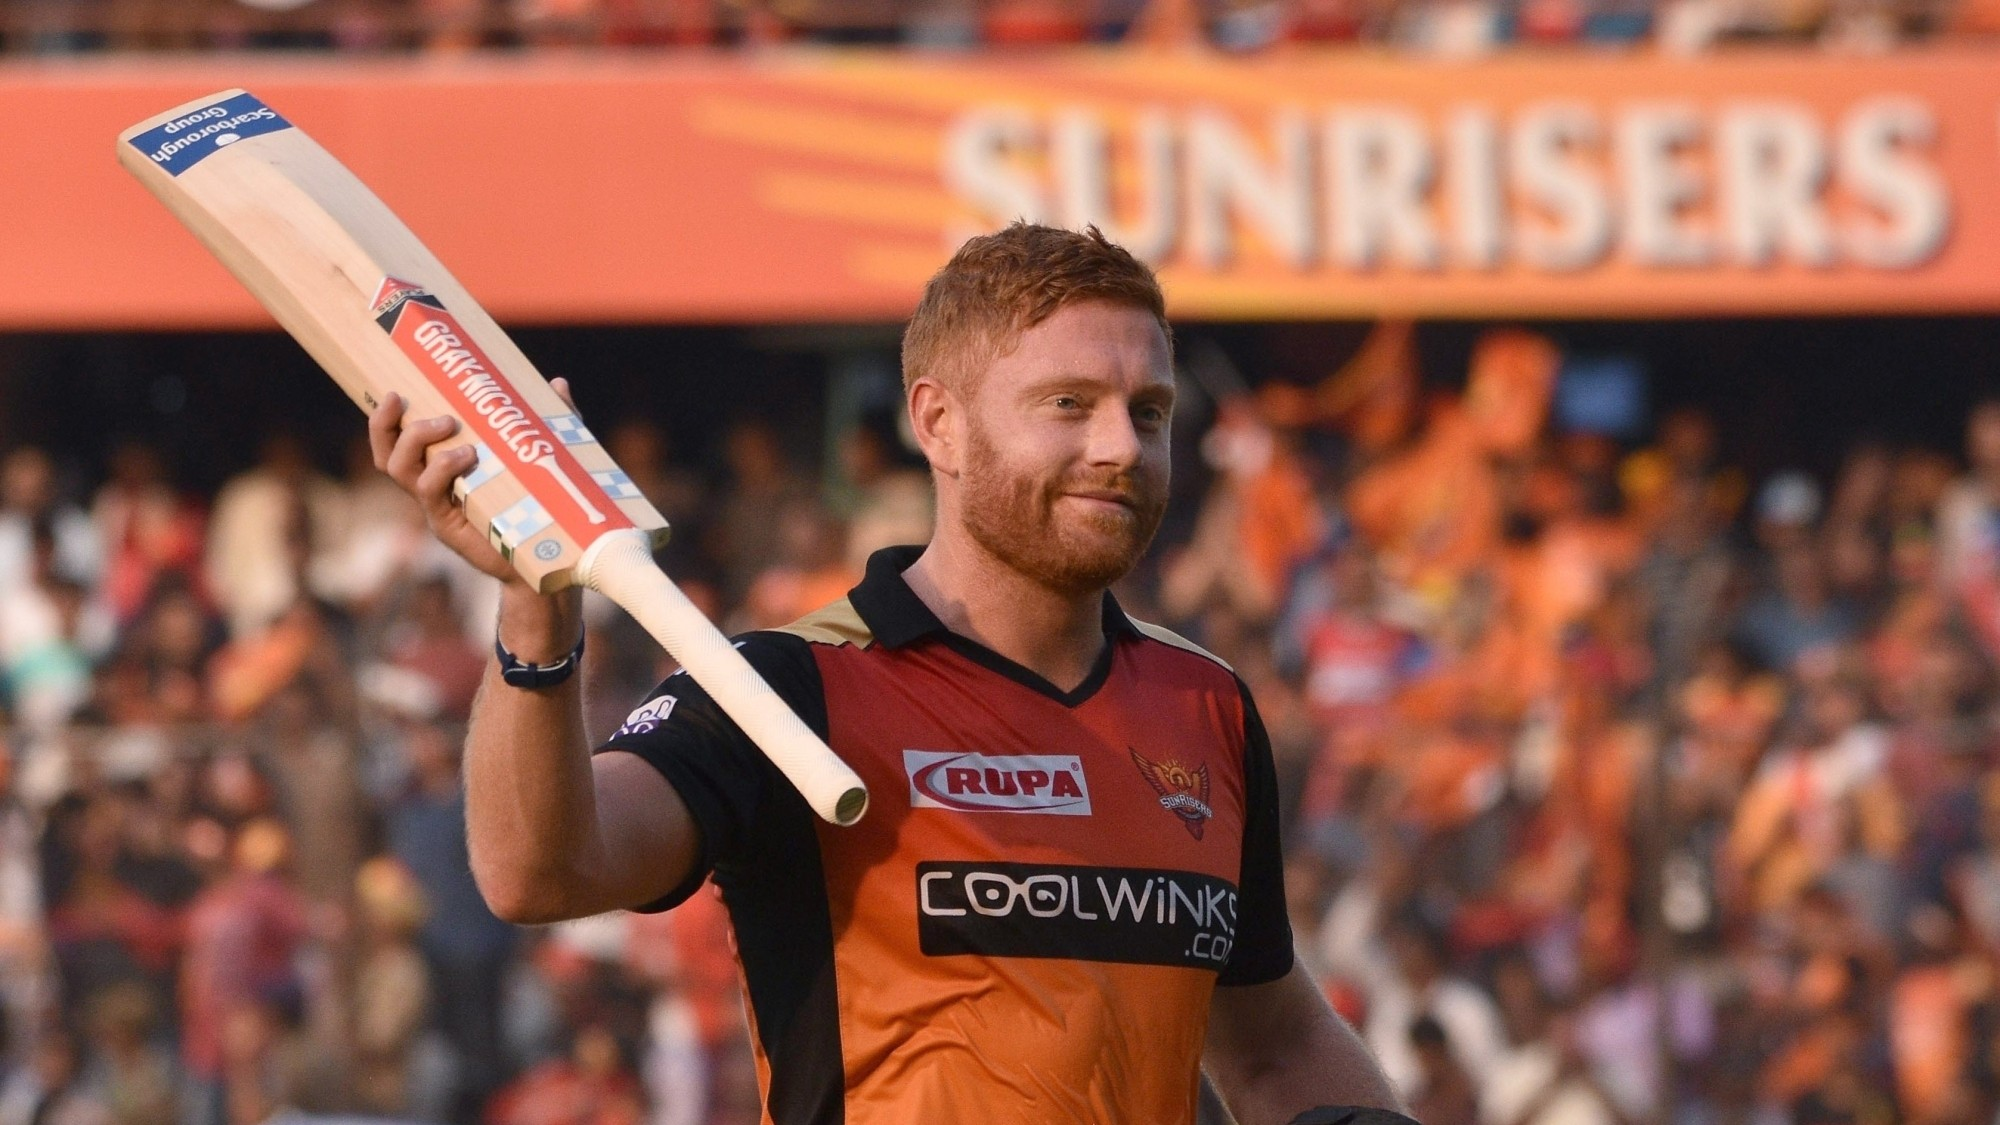 IPL 2019: SRH need to keep playing the same brand of cricket in the tournament, says Jonny Bairstow